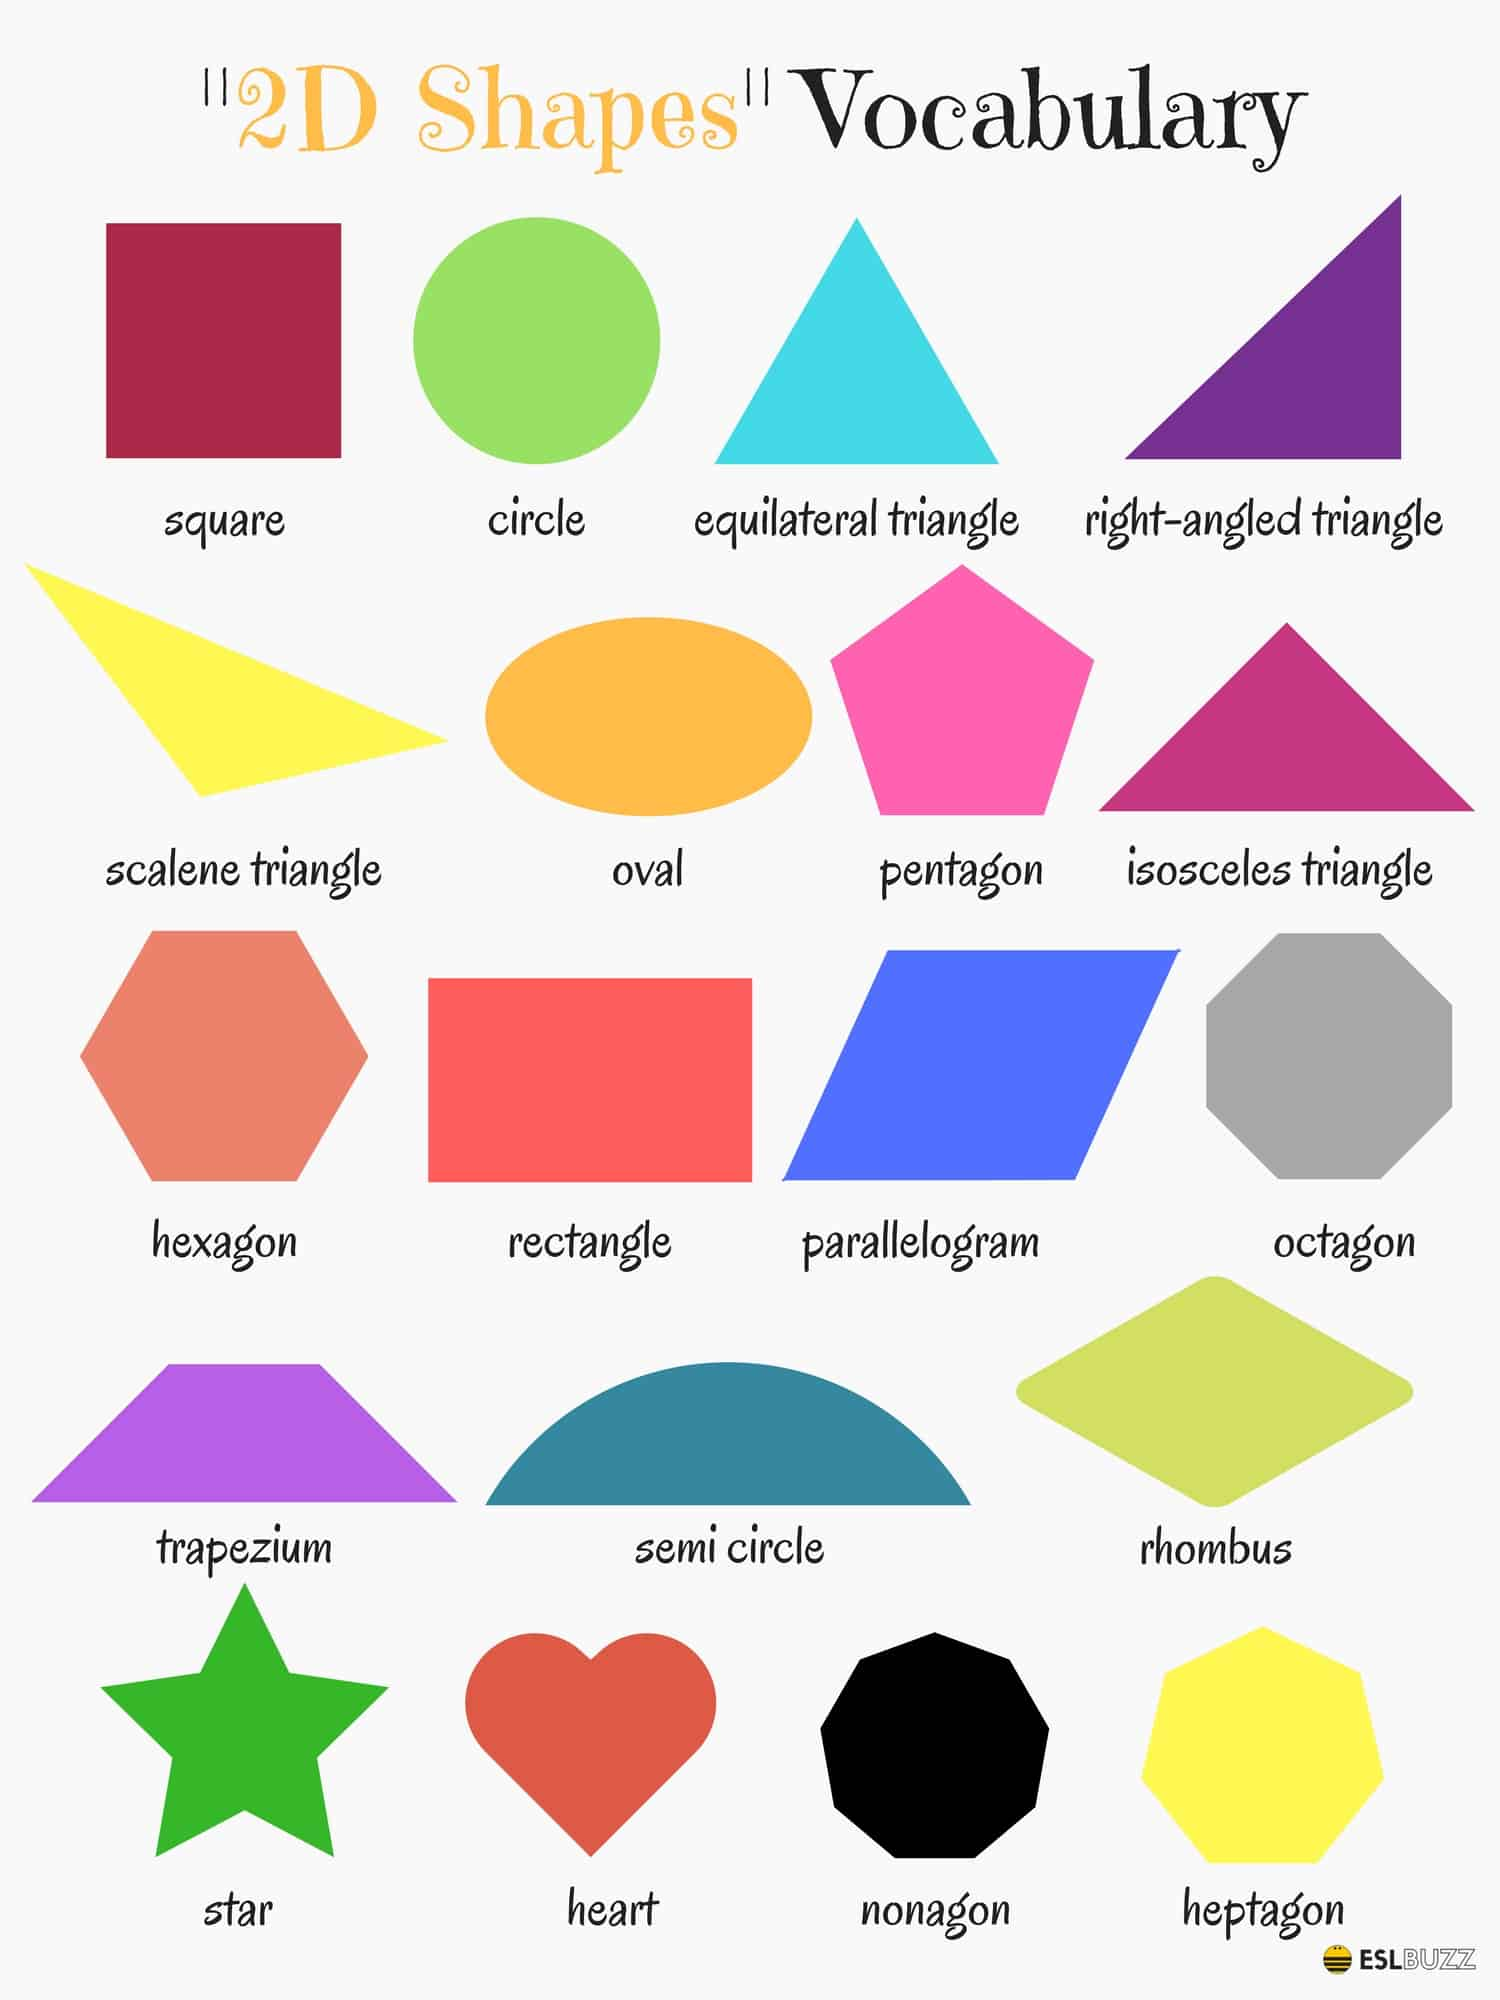 2d Shapes Vocabulary In English